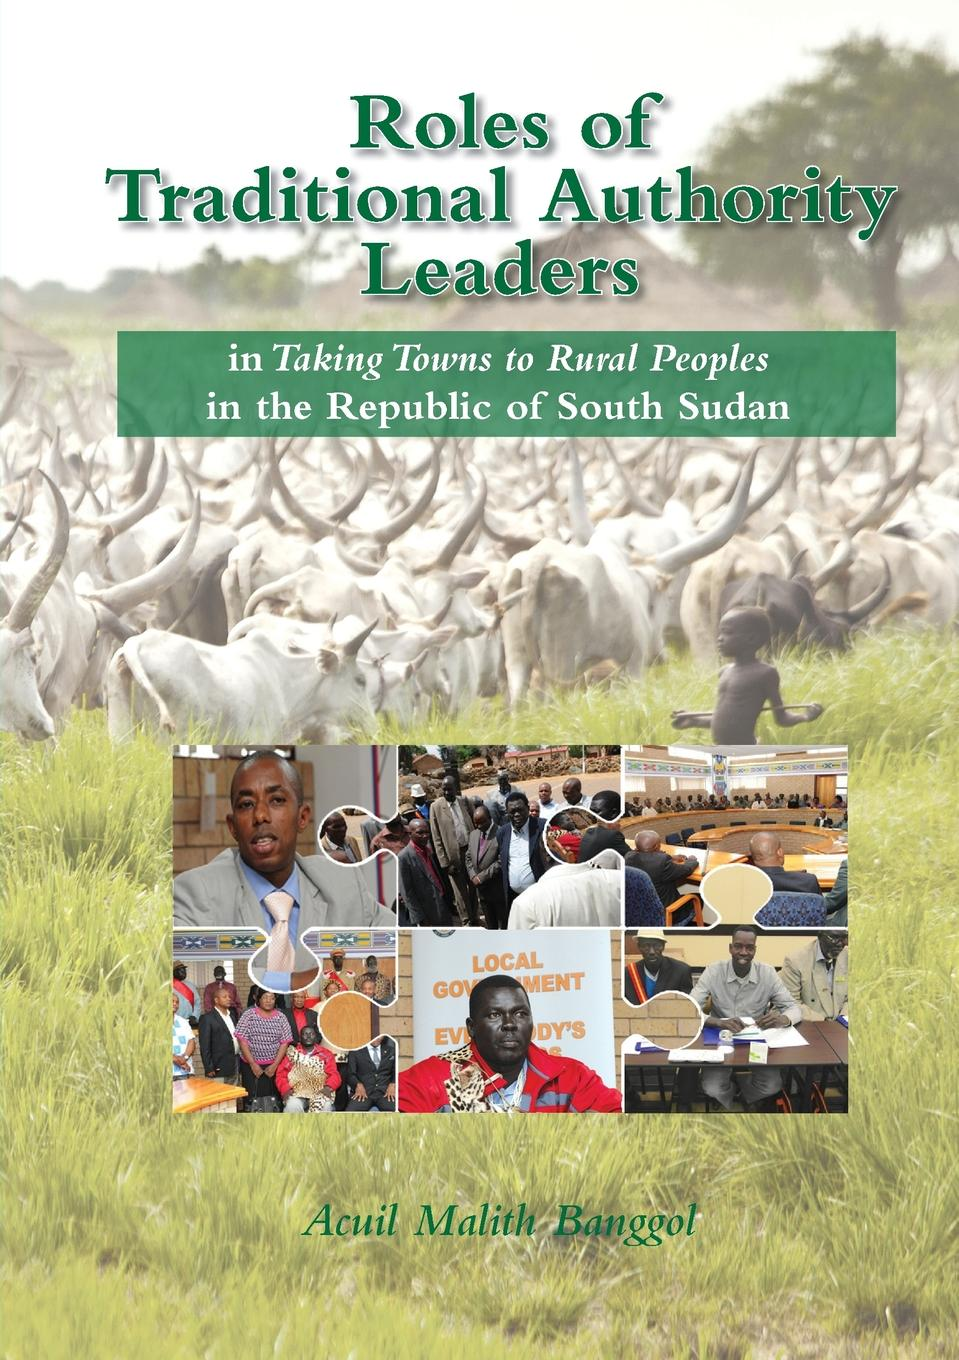 Acuil Malith Banggol ROLES OF TRADITIONAL AUTHORITY LEADERS. In Taking Towns to Rural Peoples in the Republic of South Sudan. недорго, оригинальная цена